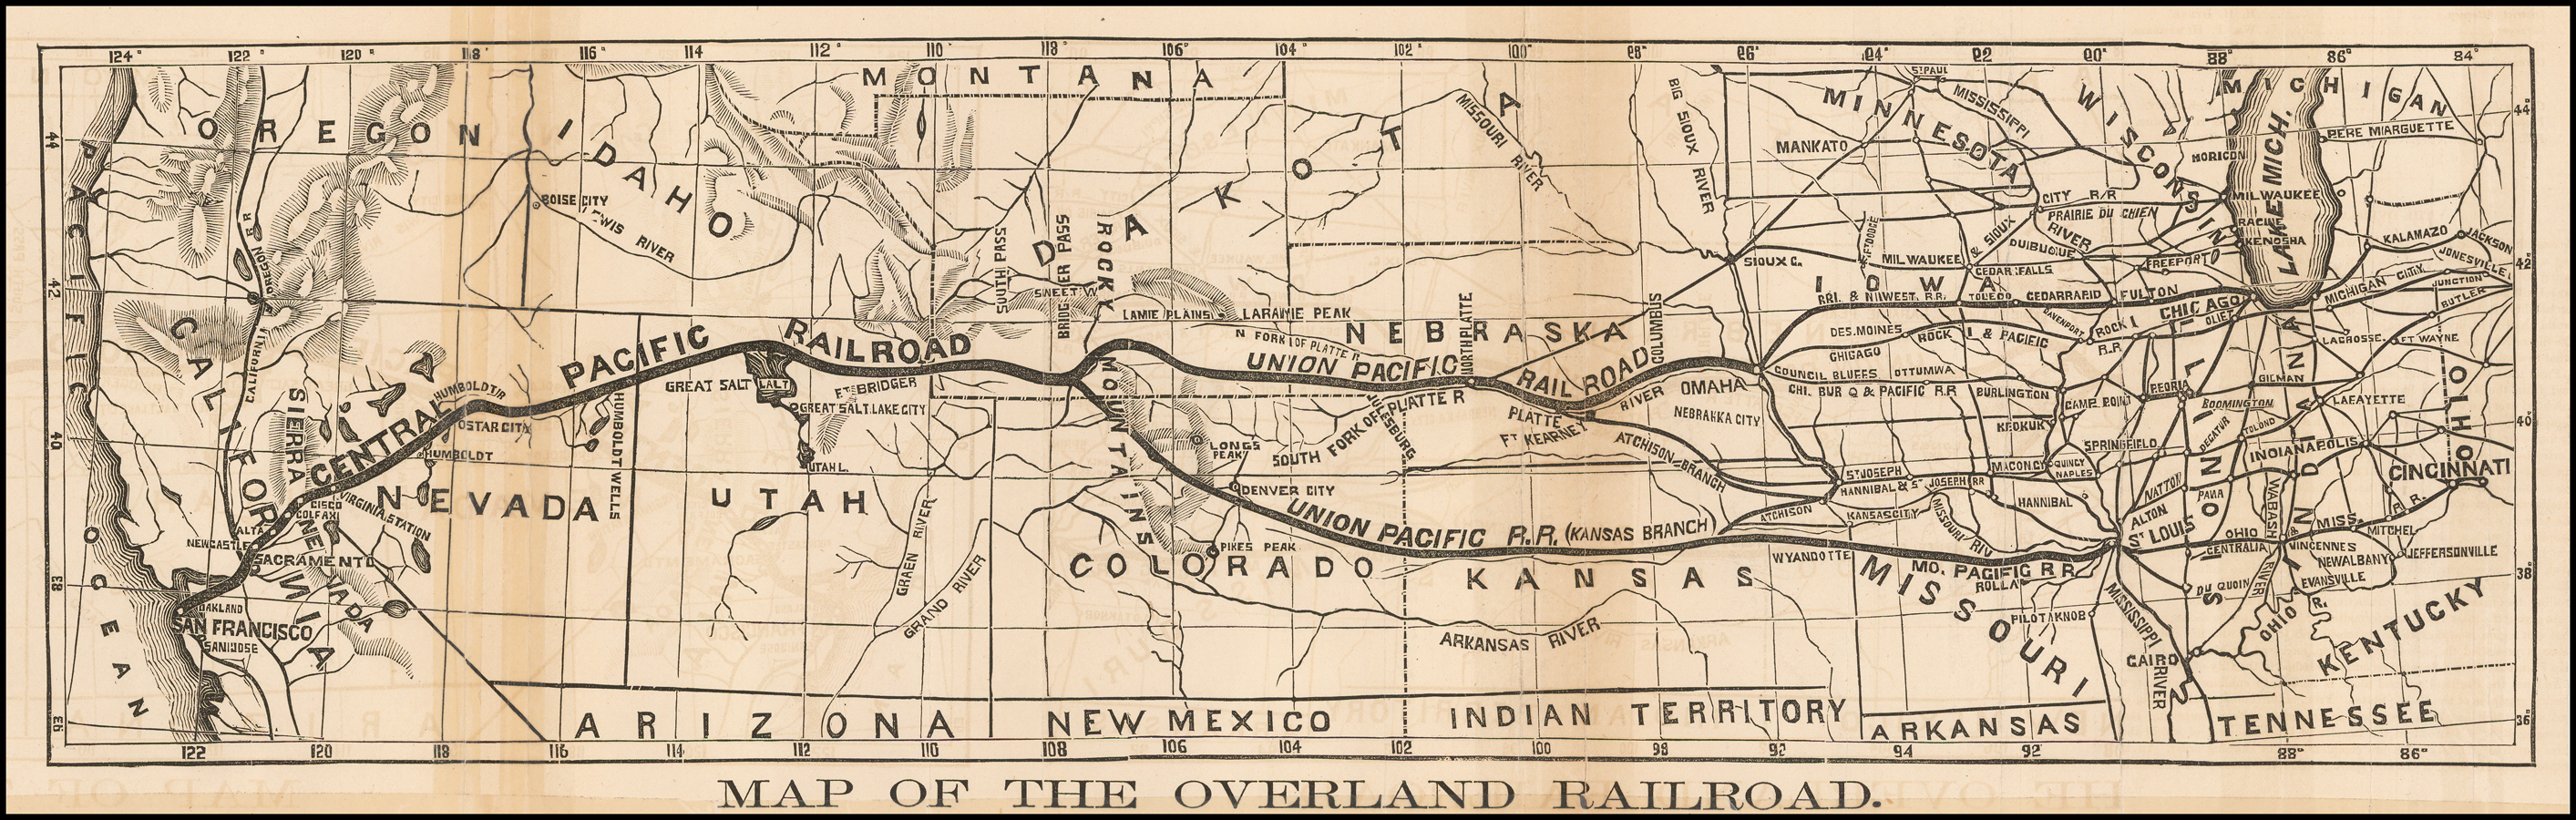 Map of the Overland Railroad (Early Central Pacific RR ... Union Pacific Railroad Map on great northern railroad map, louisiana & arkansas railroad map, chicago, burlington and quincy railroad map, chicago & northwestern railroad map, santa fe railroad map, rock island railroad map, railroad tracks in colorado map, kansas city southern railroad map, ohio railroad map, wabash railroad map, burlington northern railroad map, soo line railroad map, amtrak map, norfolk southern railroad map, illinois railway museum map, current united states railroad map, indiana harbor belt railroad map, new york central railroad map, b&o railroad map, galena and chicago union railroad map,